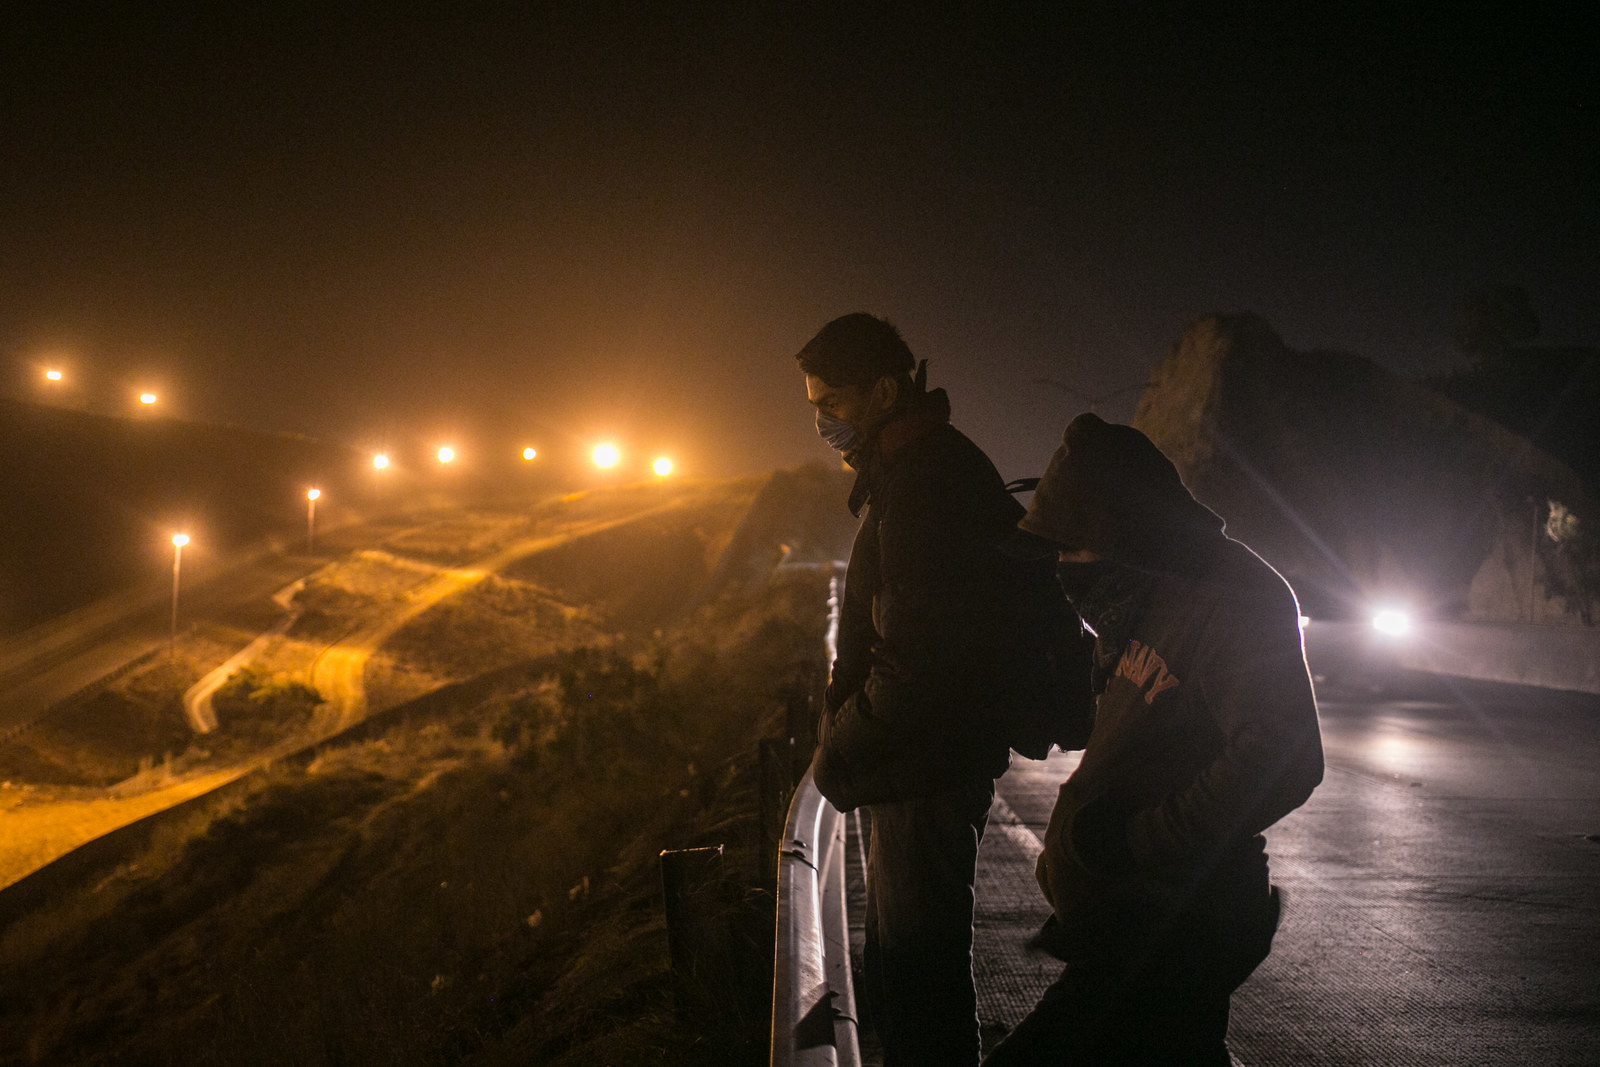 Two members of the caravan, who declined to give their names, look at the border wall from the highway in Tijuana, Dec. 1.